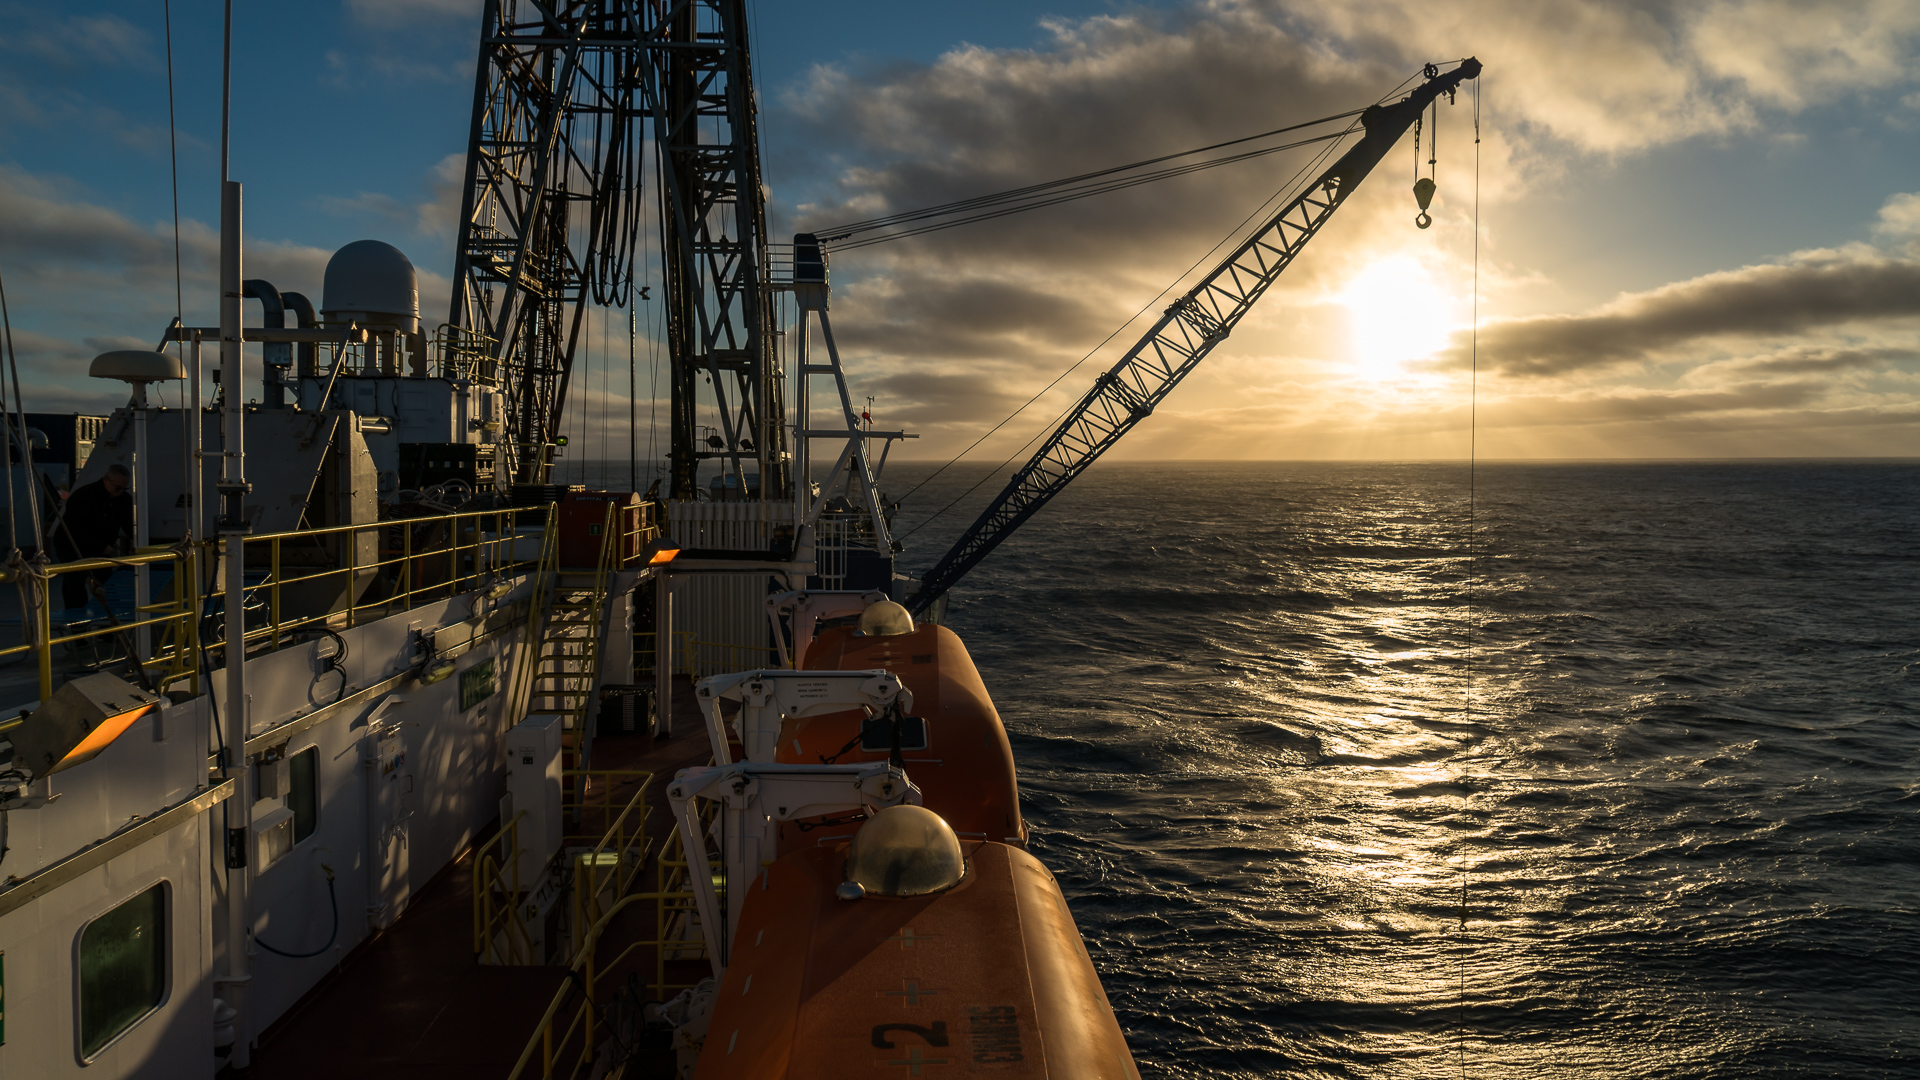 Each expedition continues 24 hours a day with scientists and crew working 12 hour shift cycles.